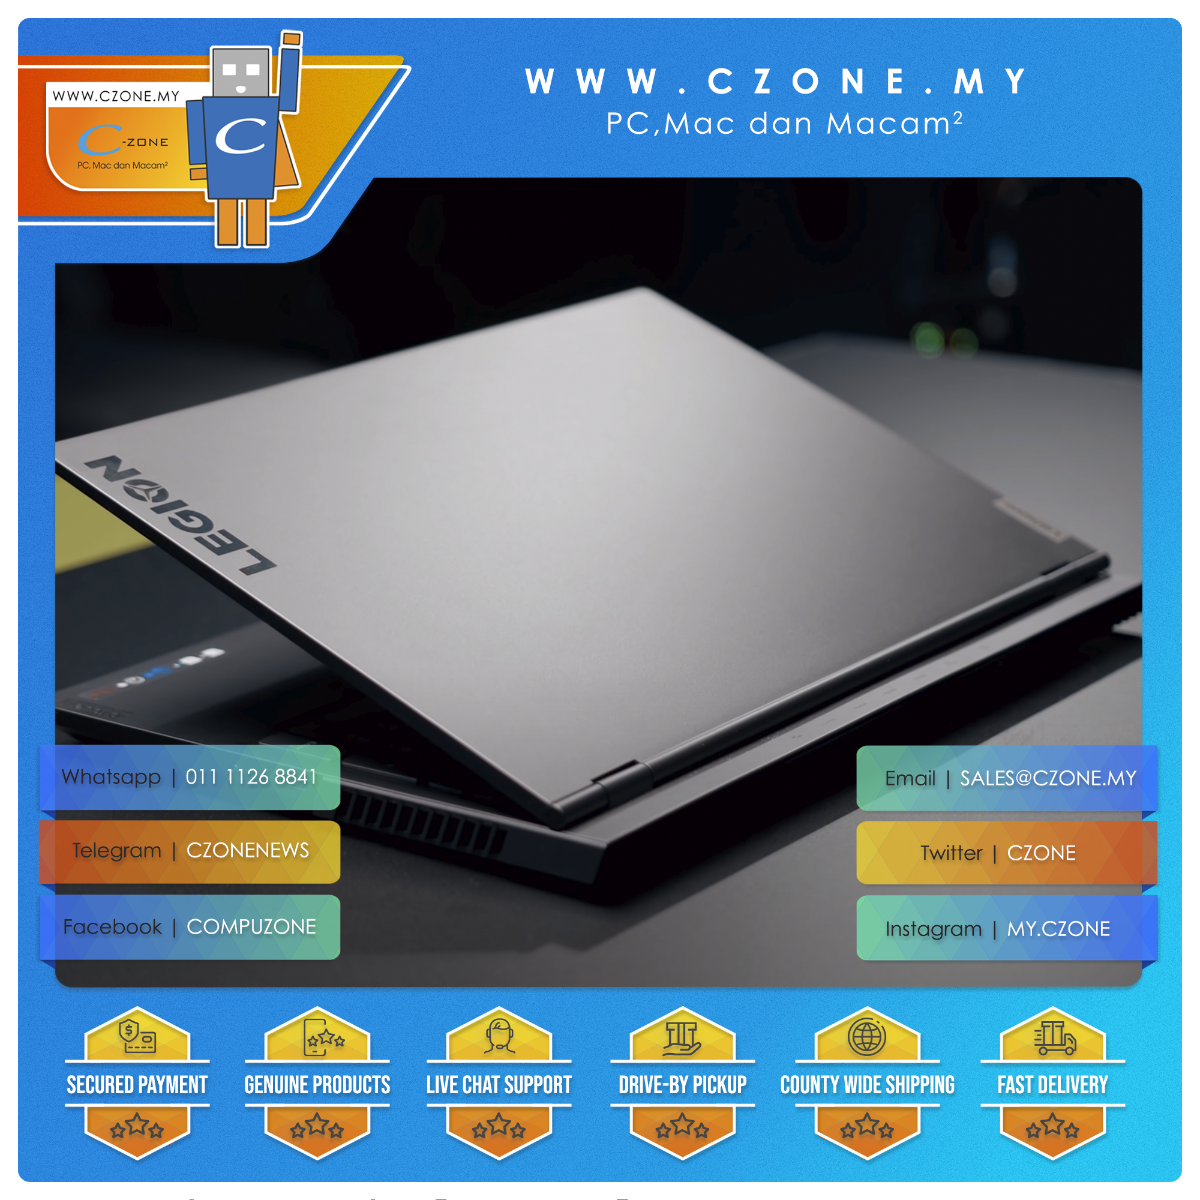 https://czone.my/czone/computer-components/core-components/fan-pc-cooling.html?brand=5701